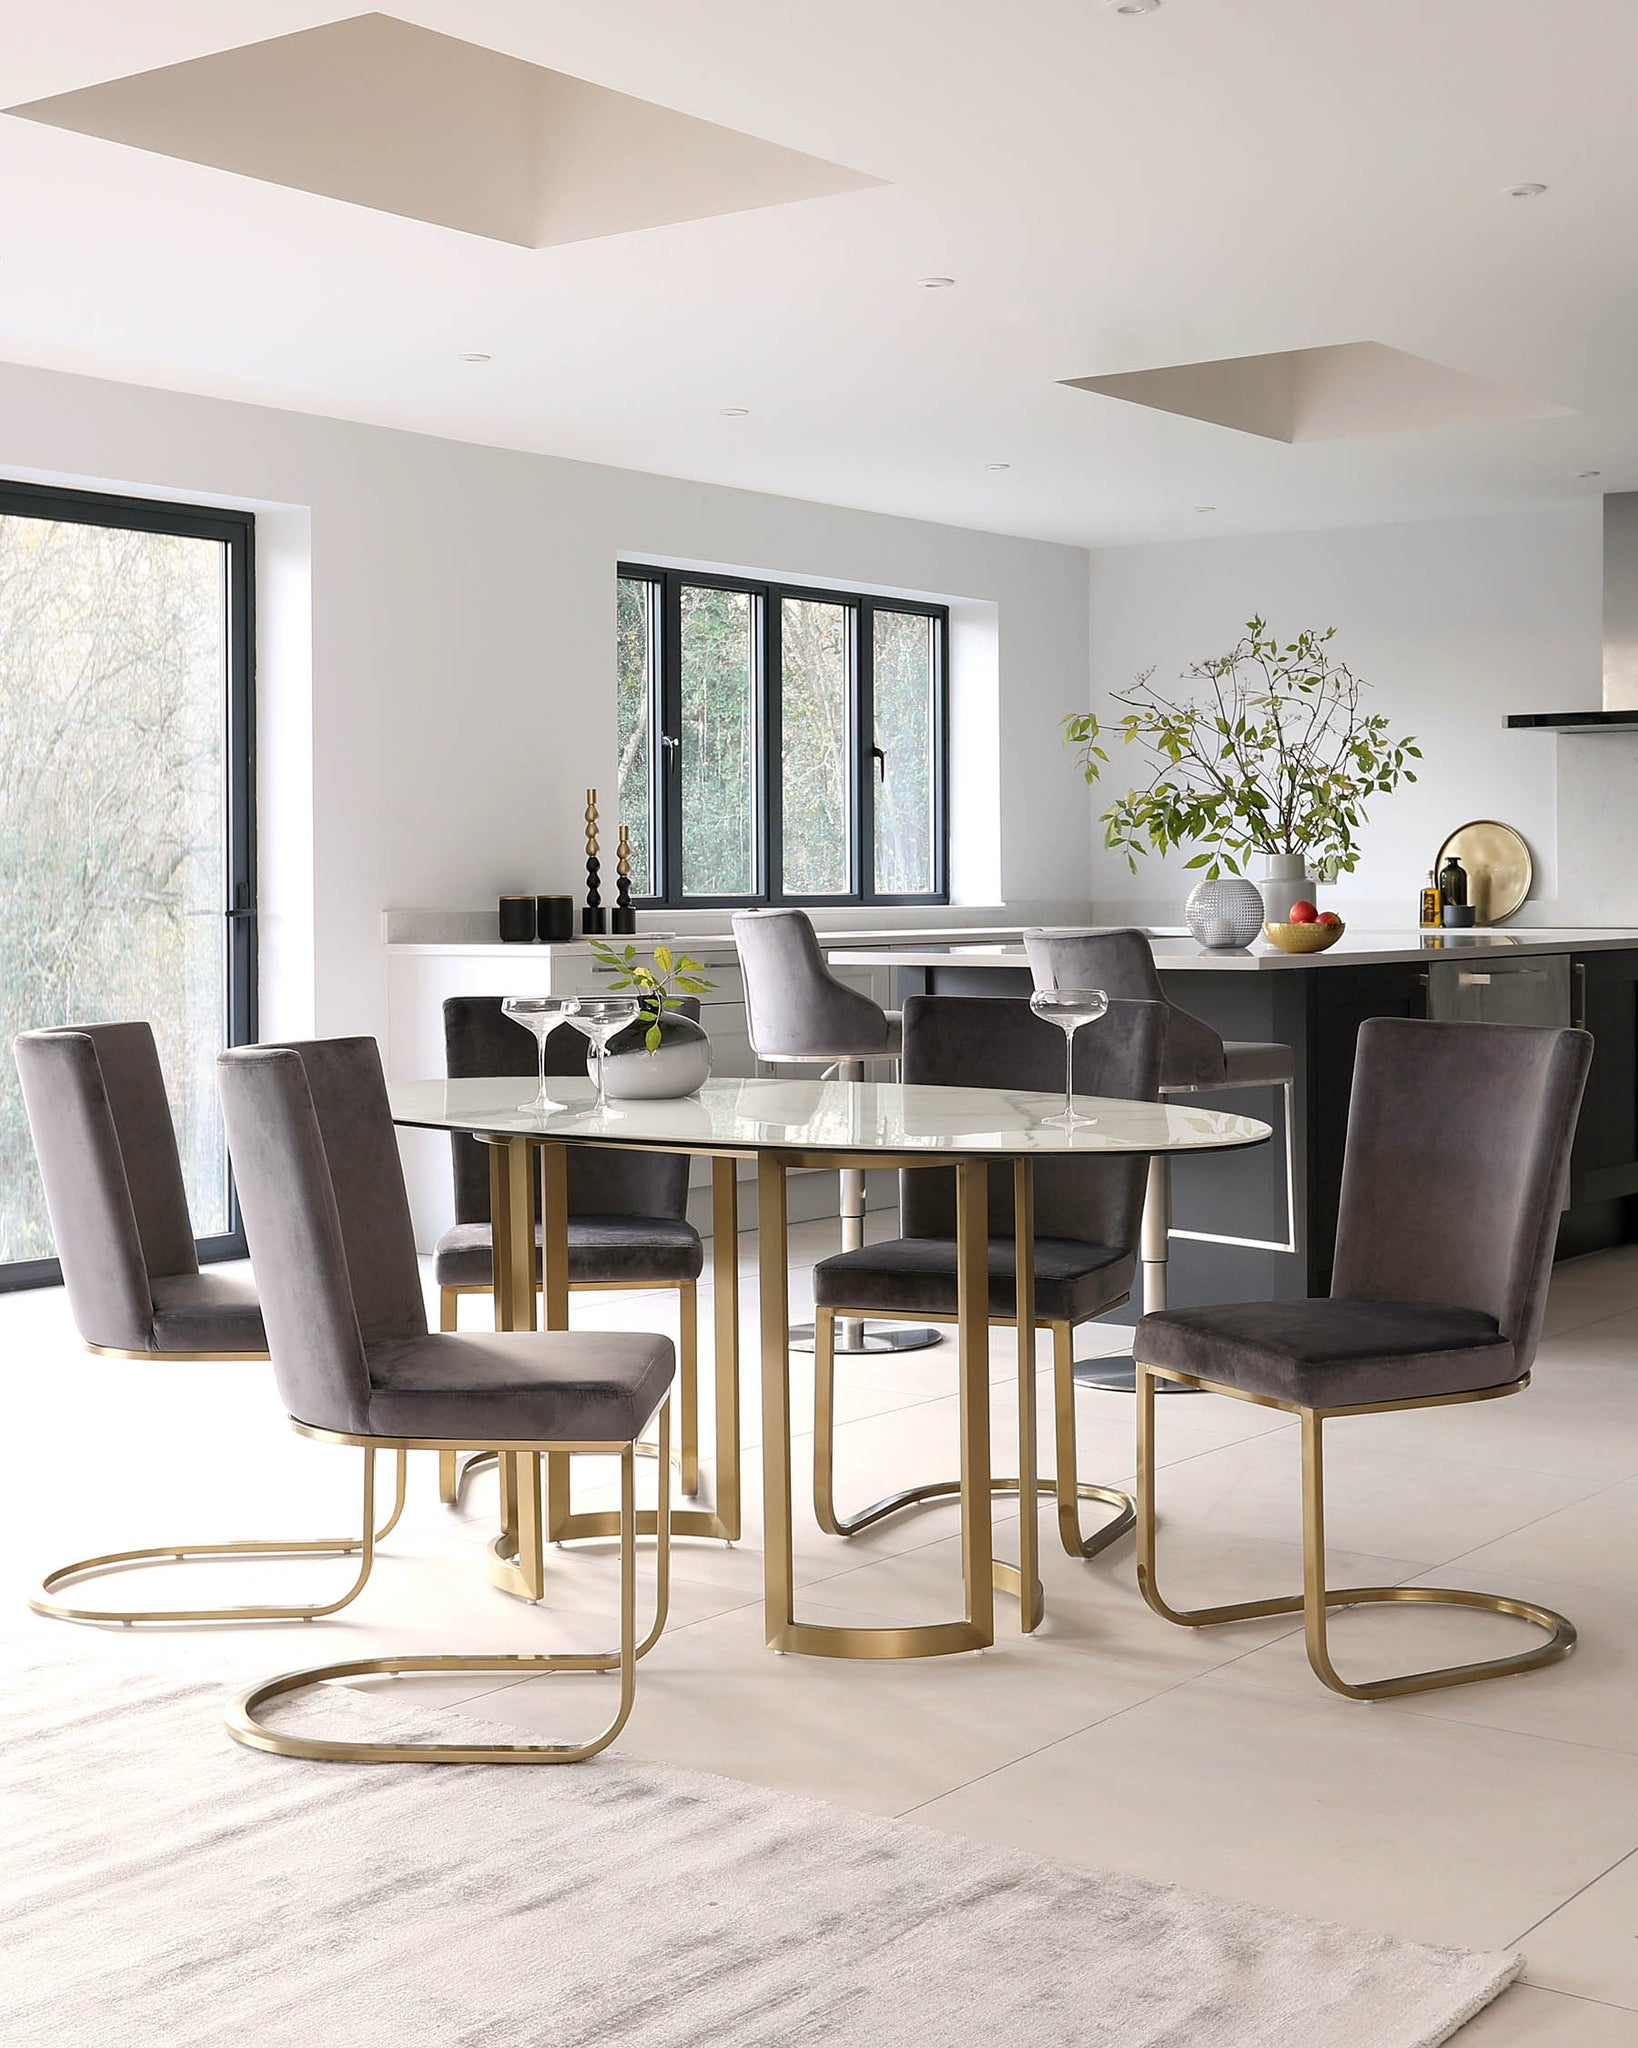 Skylar Ceramic Marble And Brass Dining Table